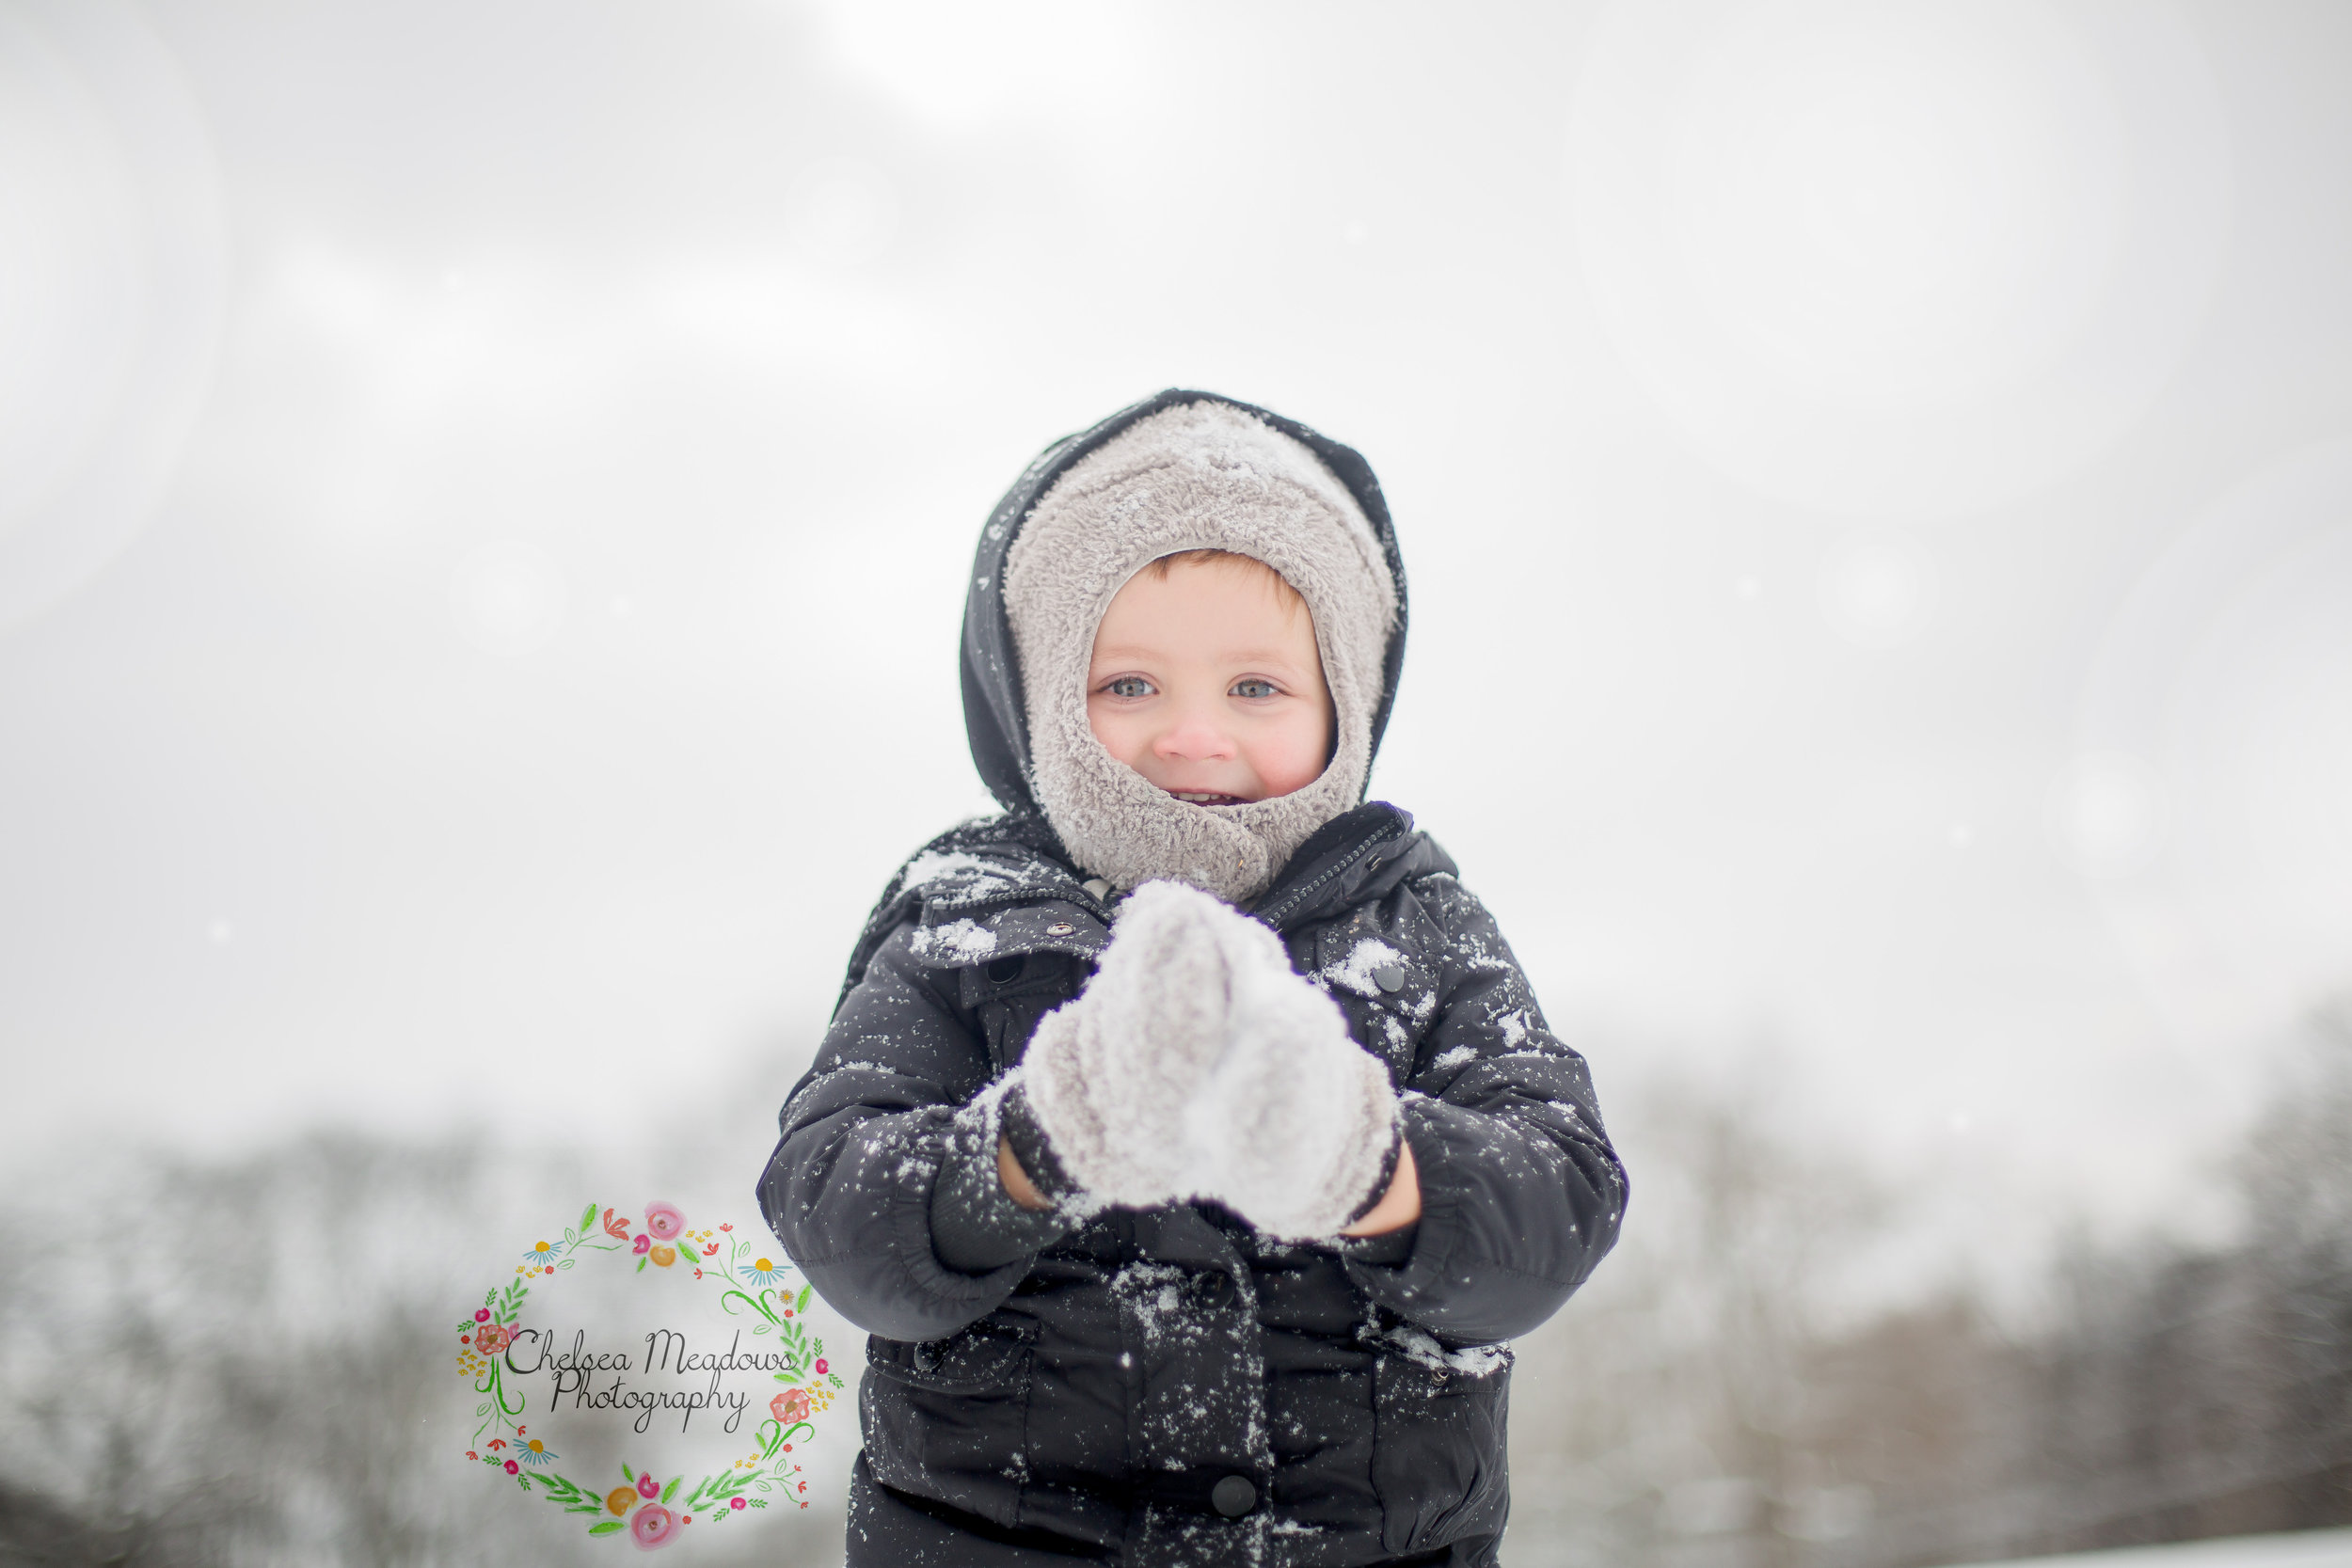 Ryder Snow Day 2018 - Nashville Family Photographer - Chelsea Meadows Photography (16).jpg